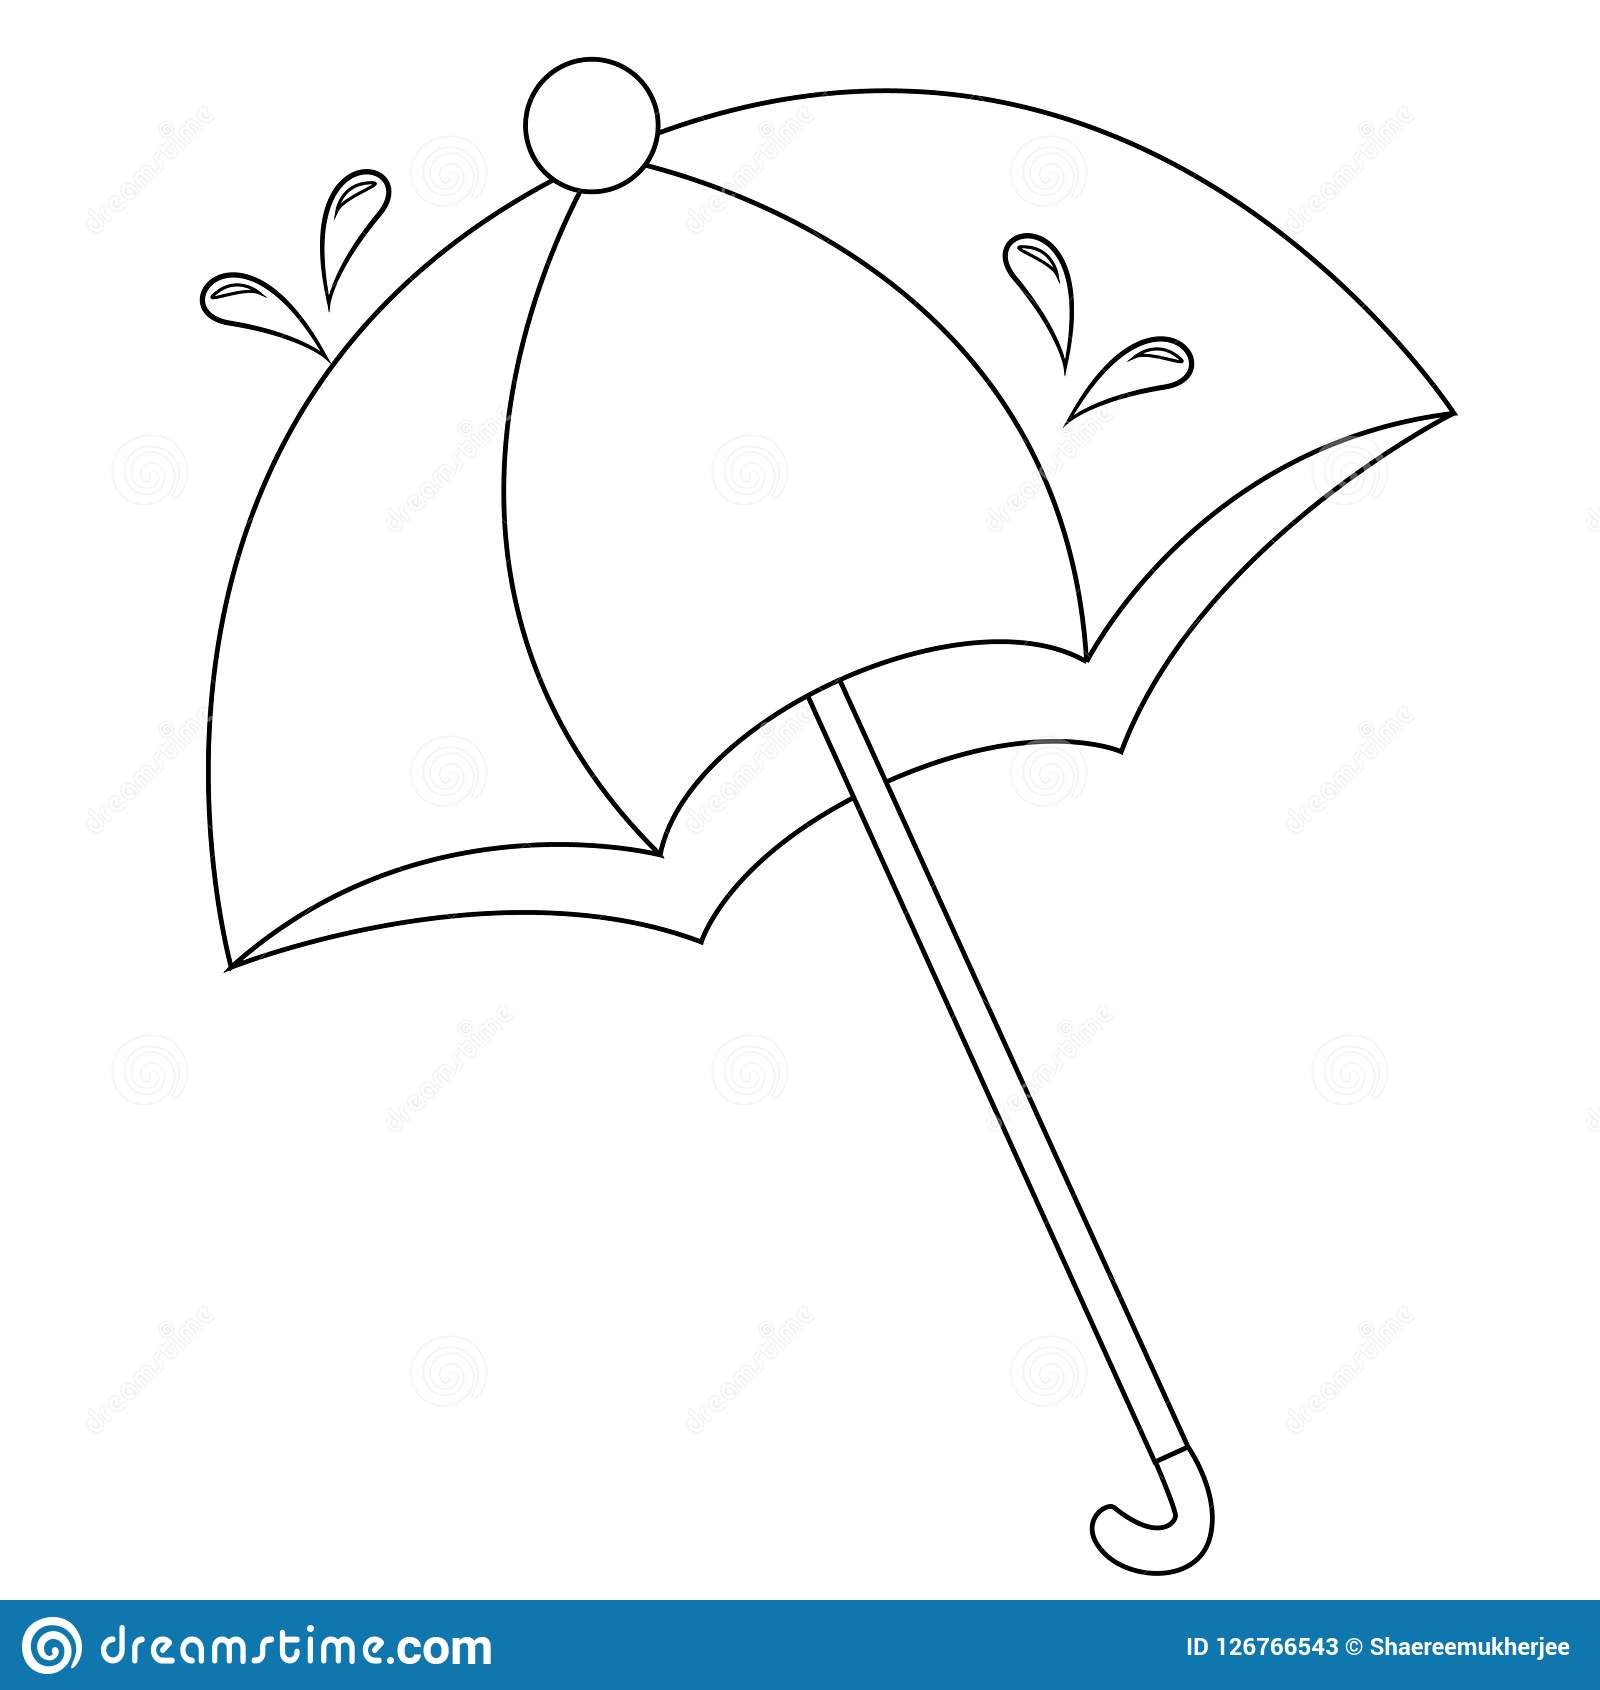 Umbrella Coloring Page For Kids Stock Vector - Illustration of ...